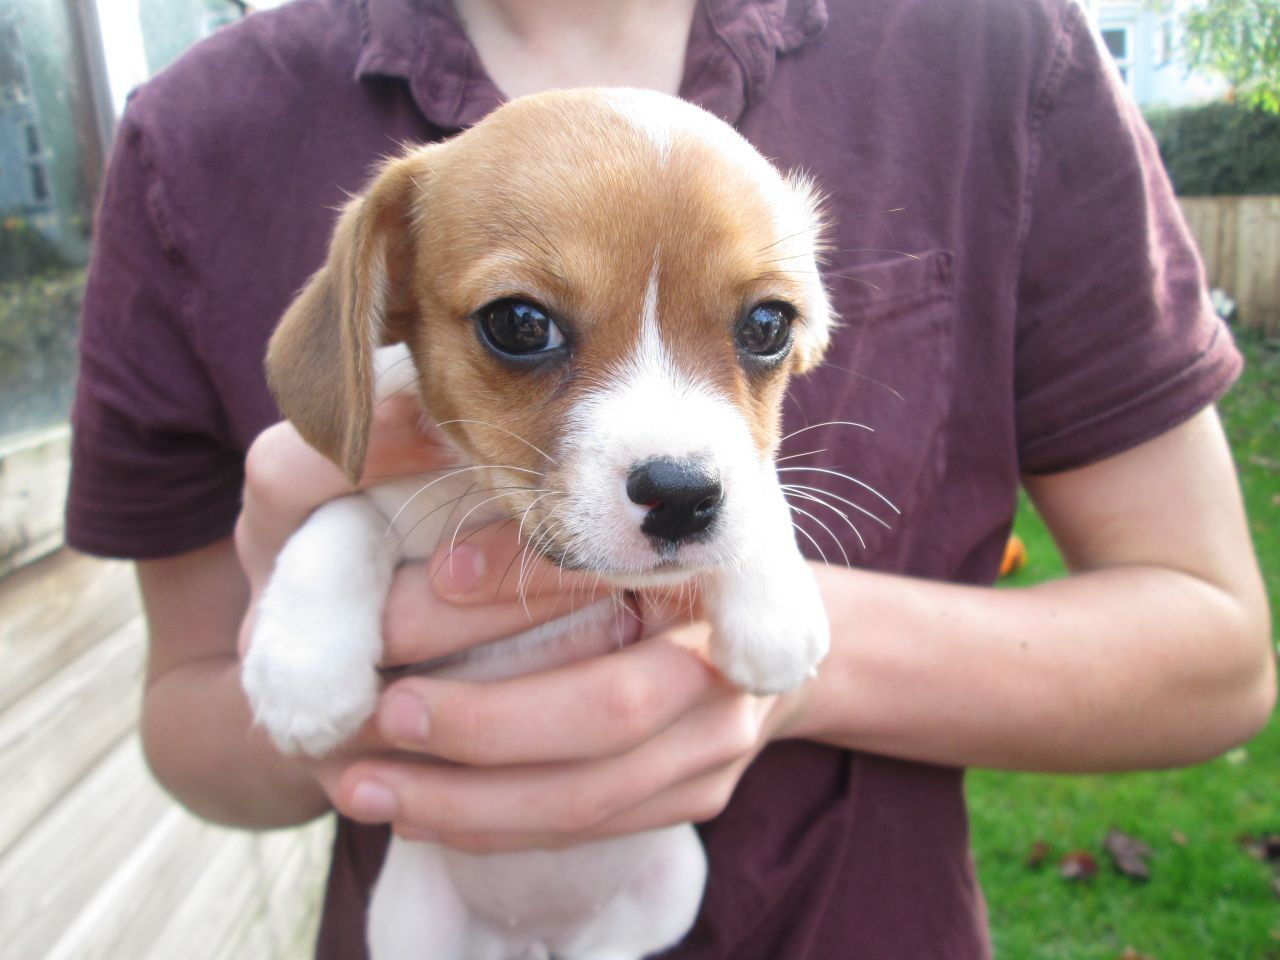 Google Image Result For Https Www Pets4homes Co Uk Images Classifieds 2015 11 02 1125671 Large Cavalie Chihuahua Puppies Chihuahua Chihuahua Puppies For Sale